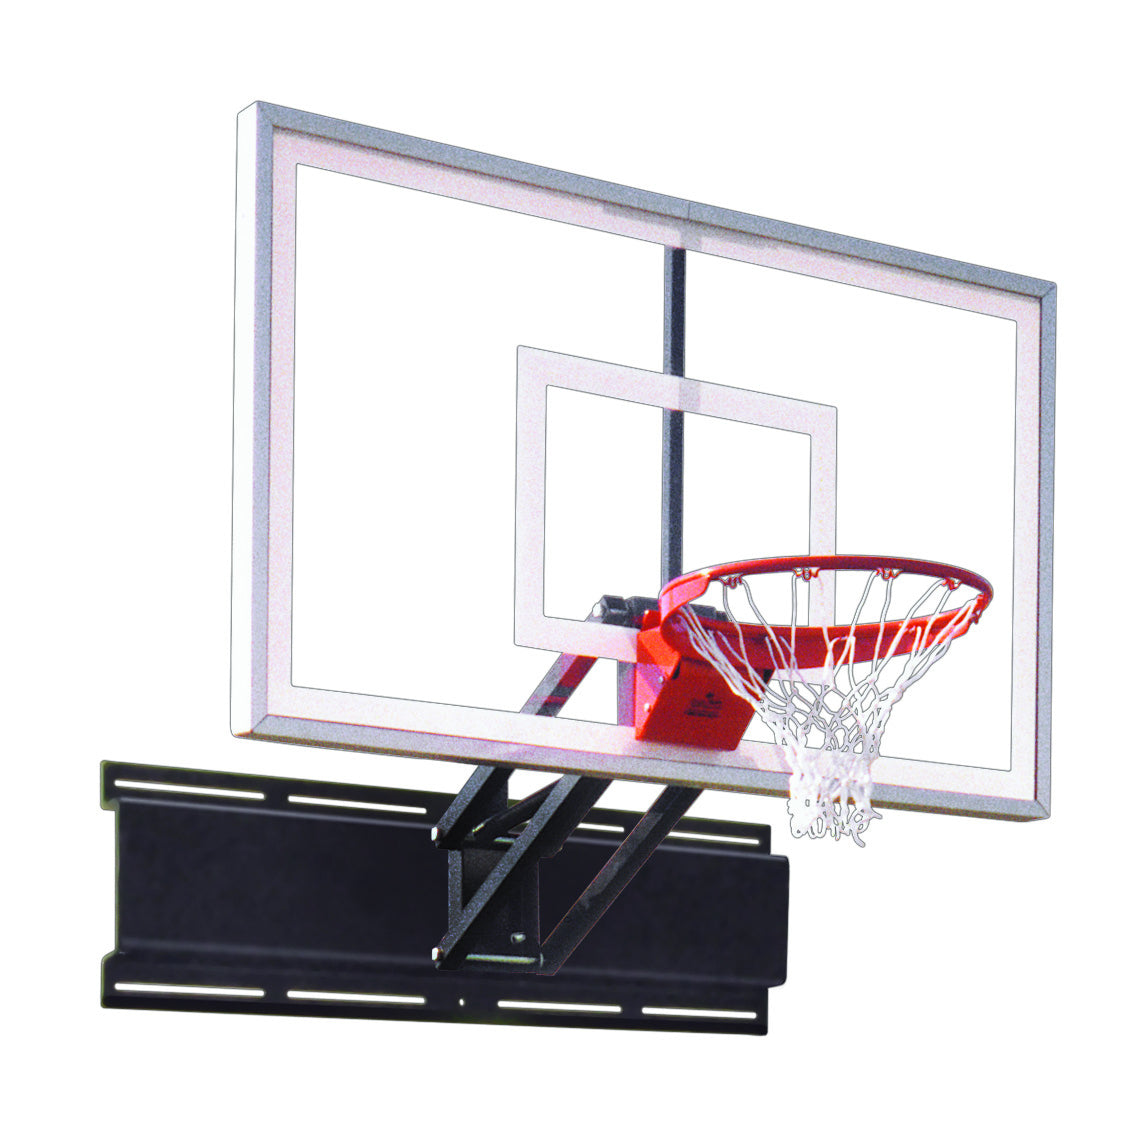 "First Team Uni-Champ Turbo Wall Mount Adjustable Basketball Hoop 36""x 54"""